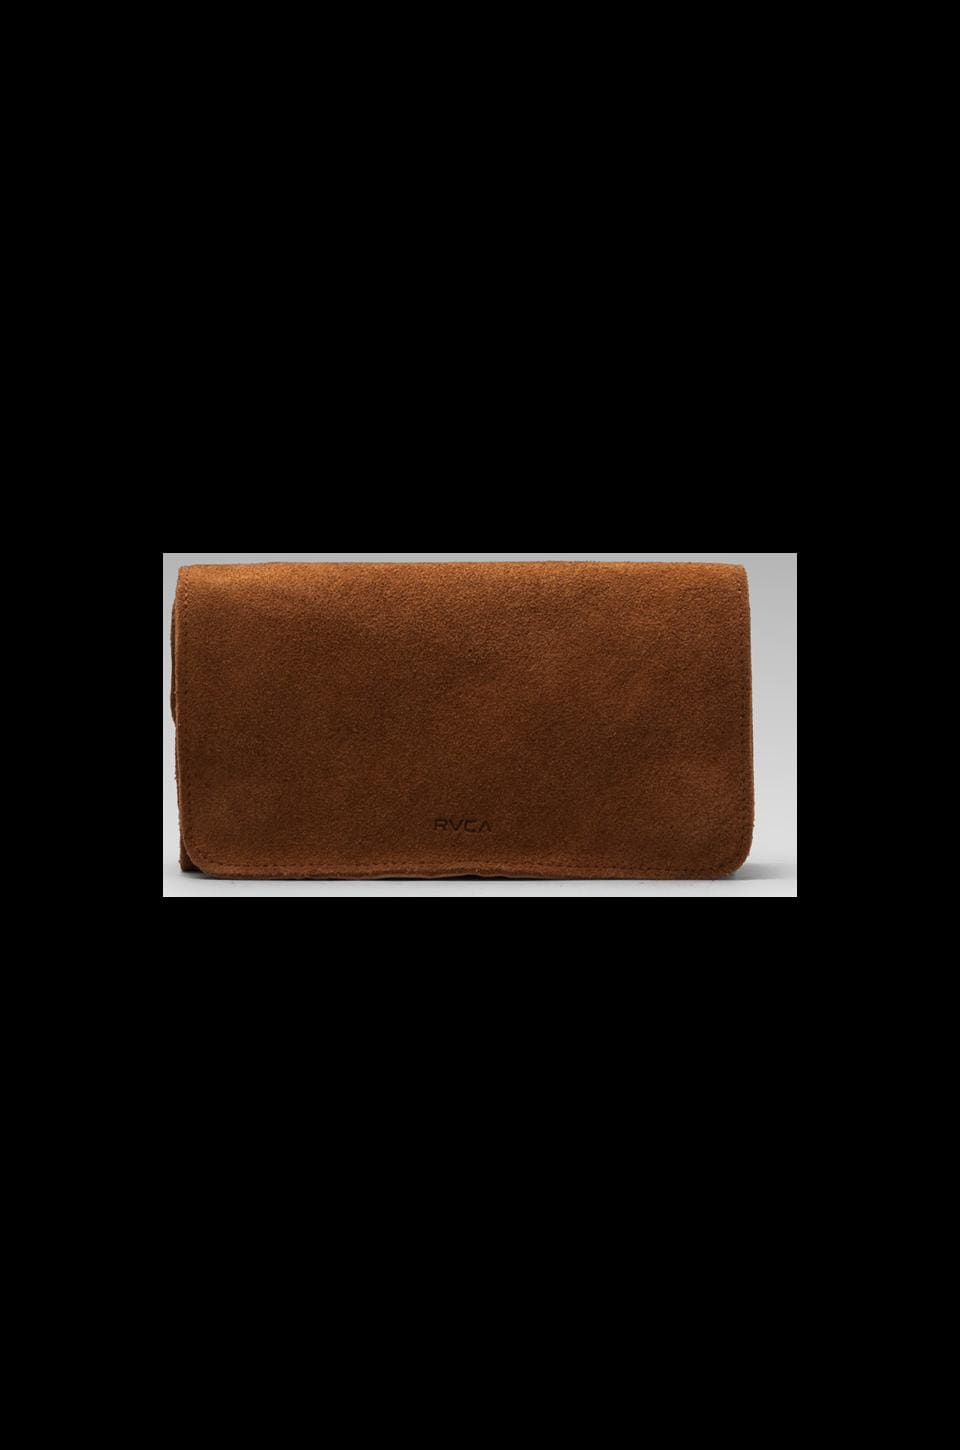 RVCA Ballesterros Suede Wallet in Tan